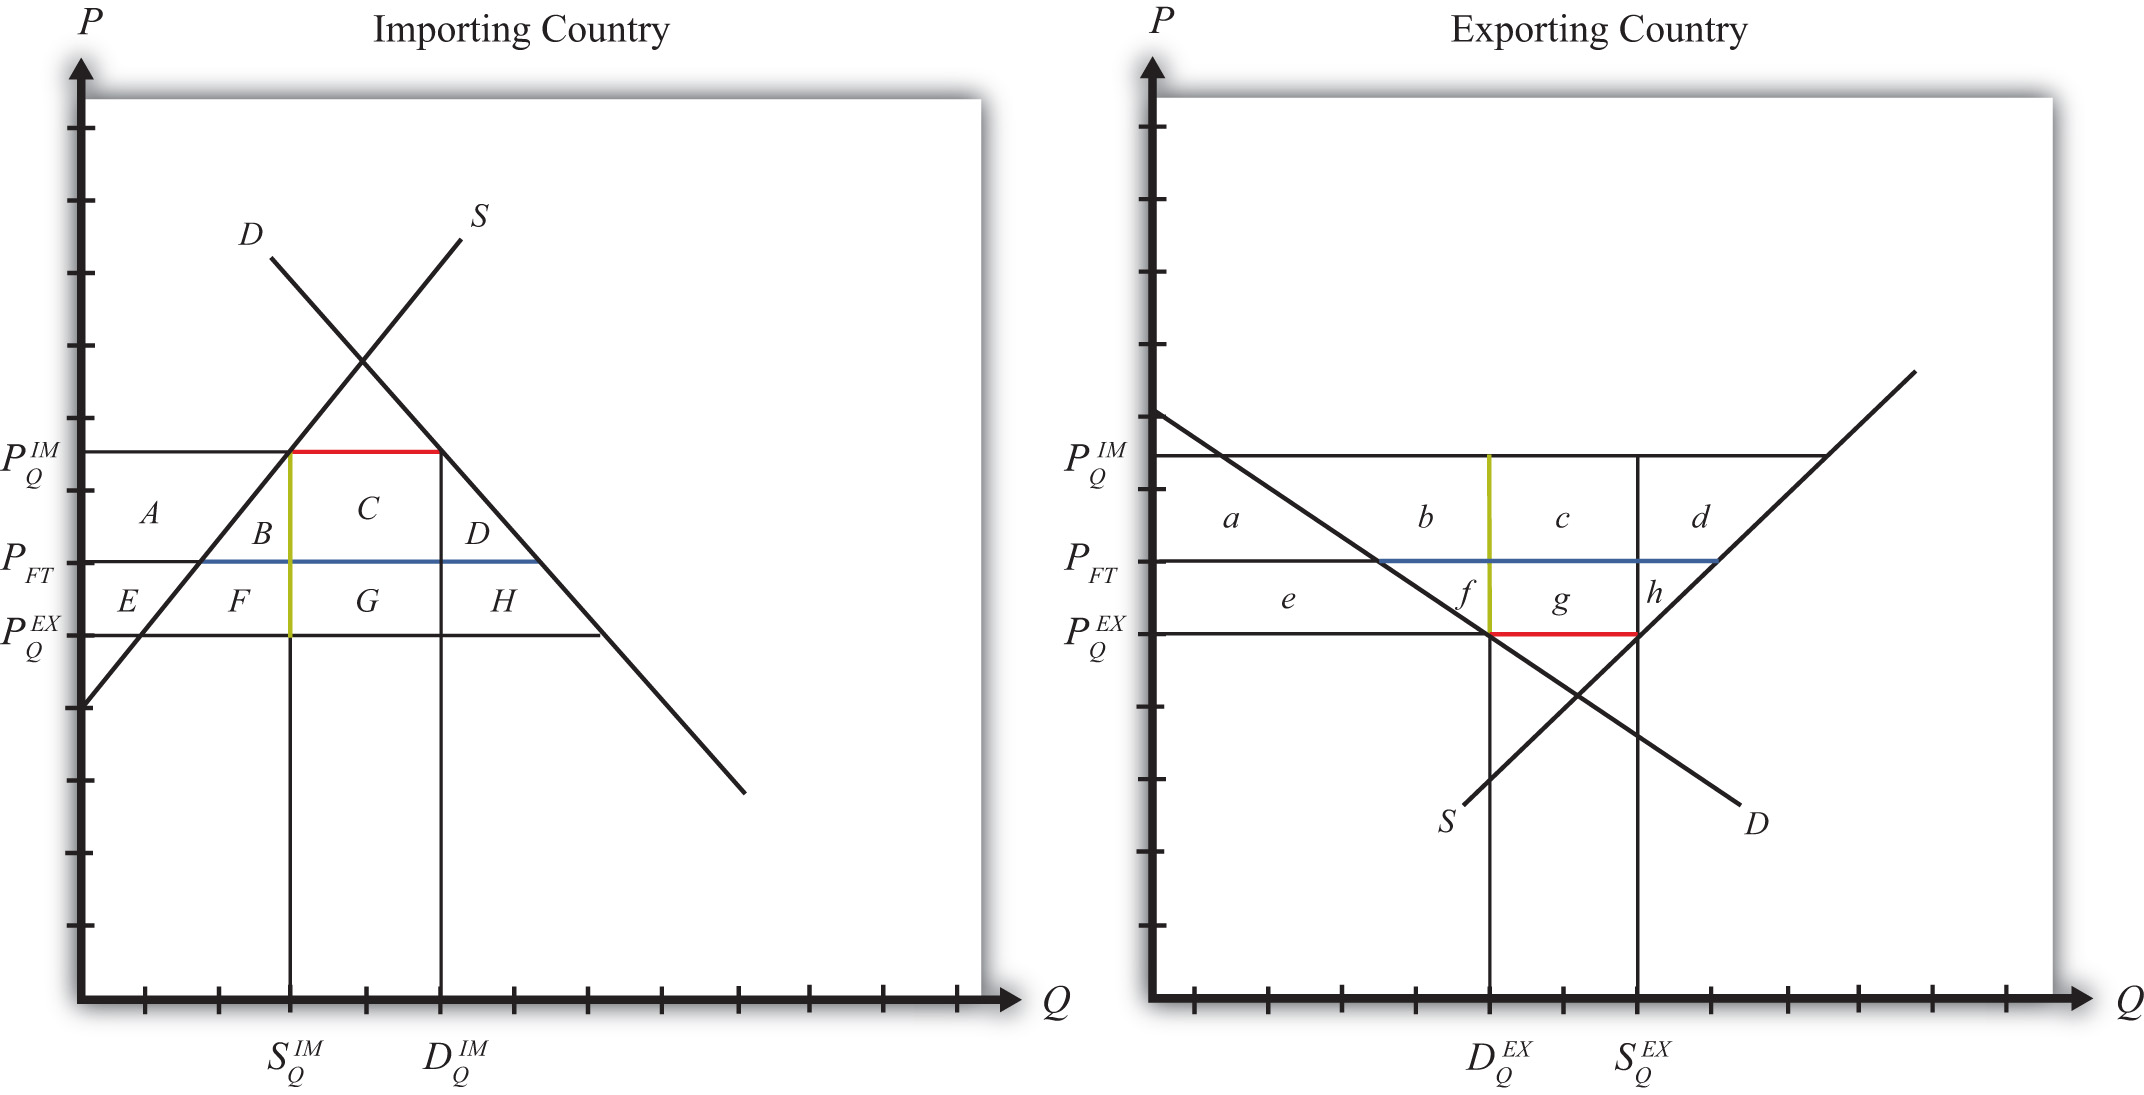 Import Quota: Large Country Welfare Effects International Trade Graph